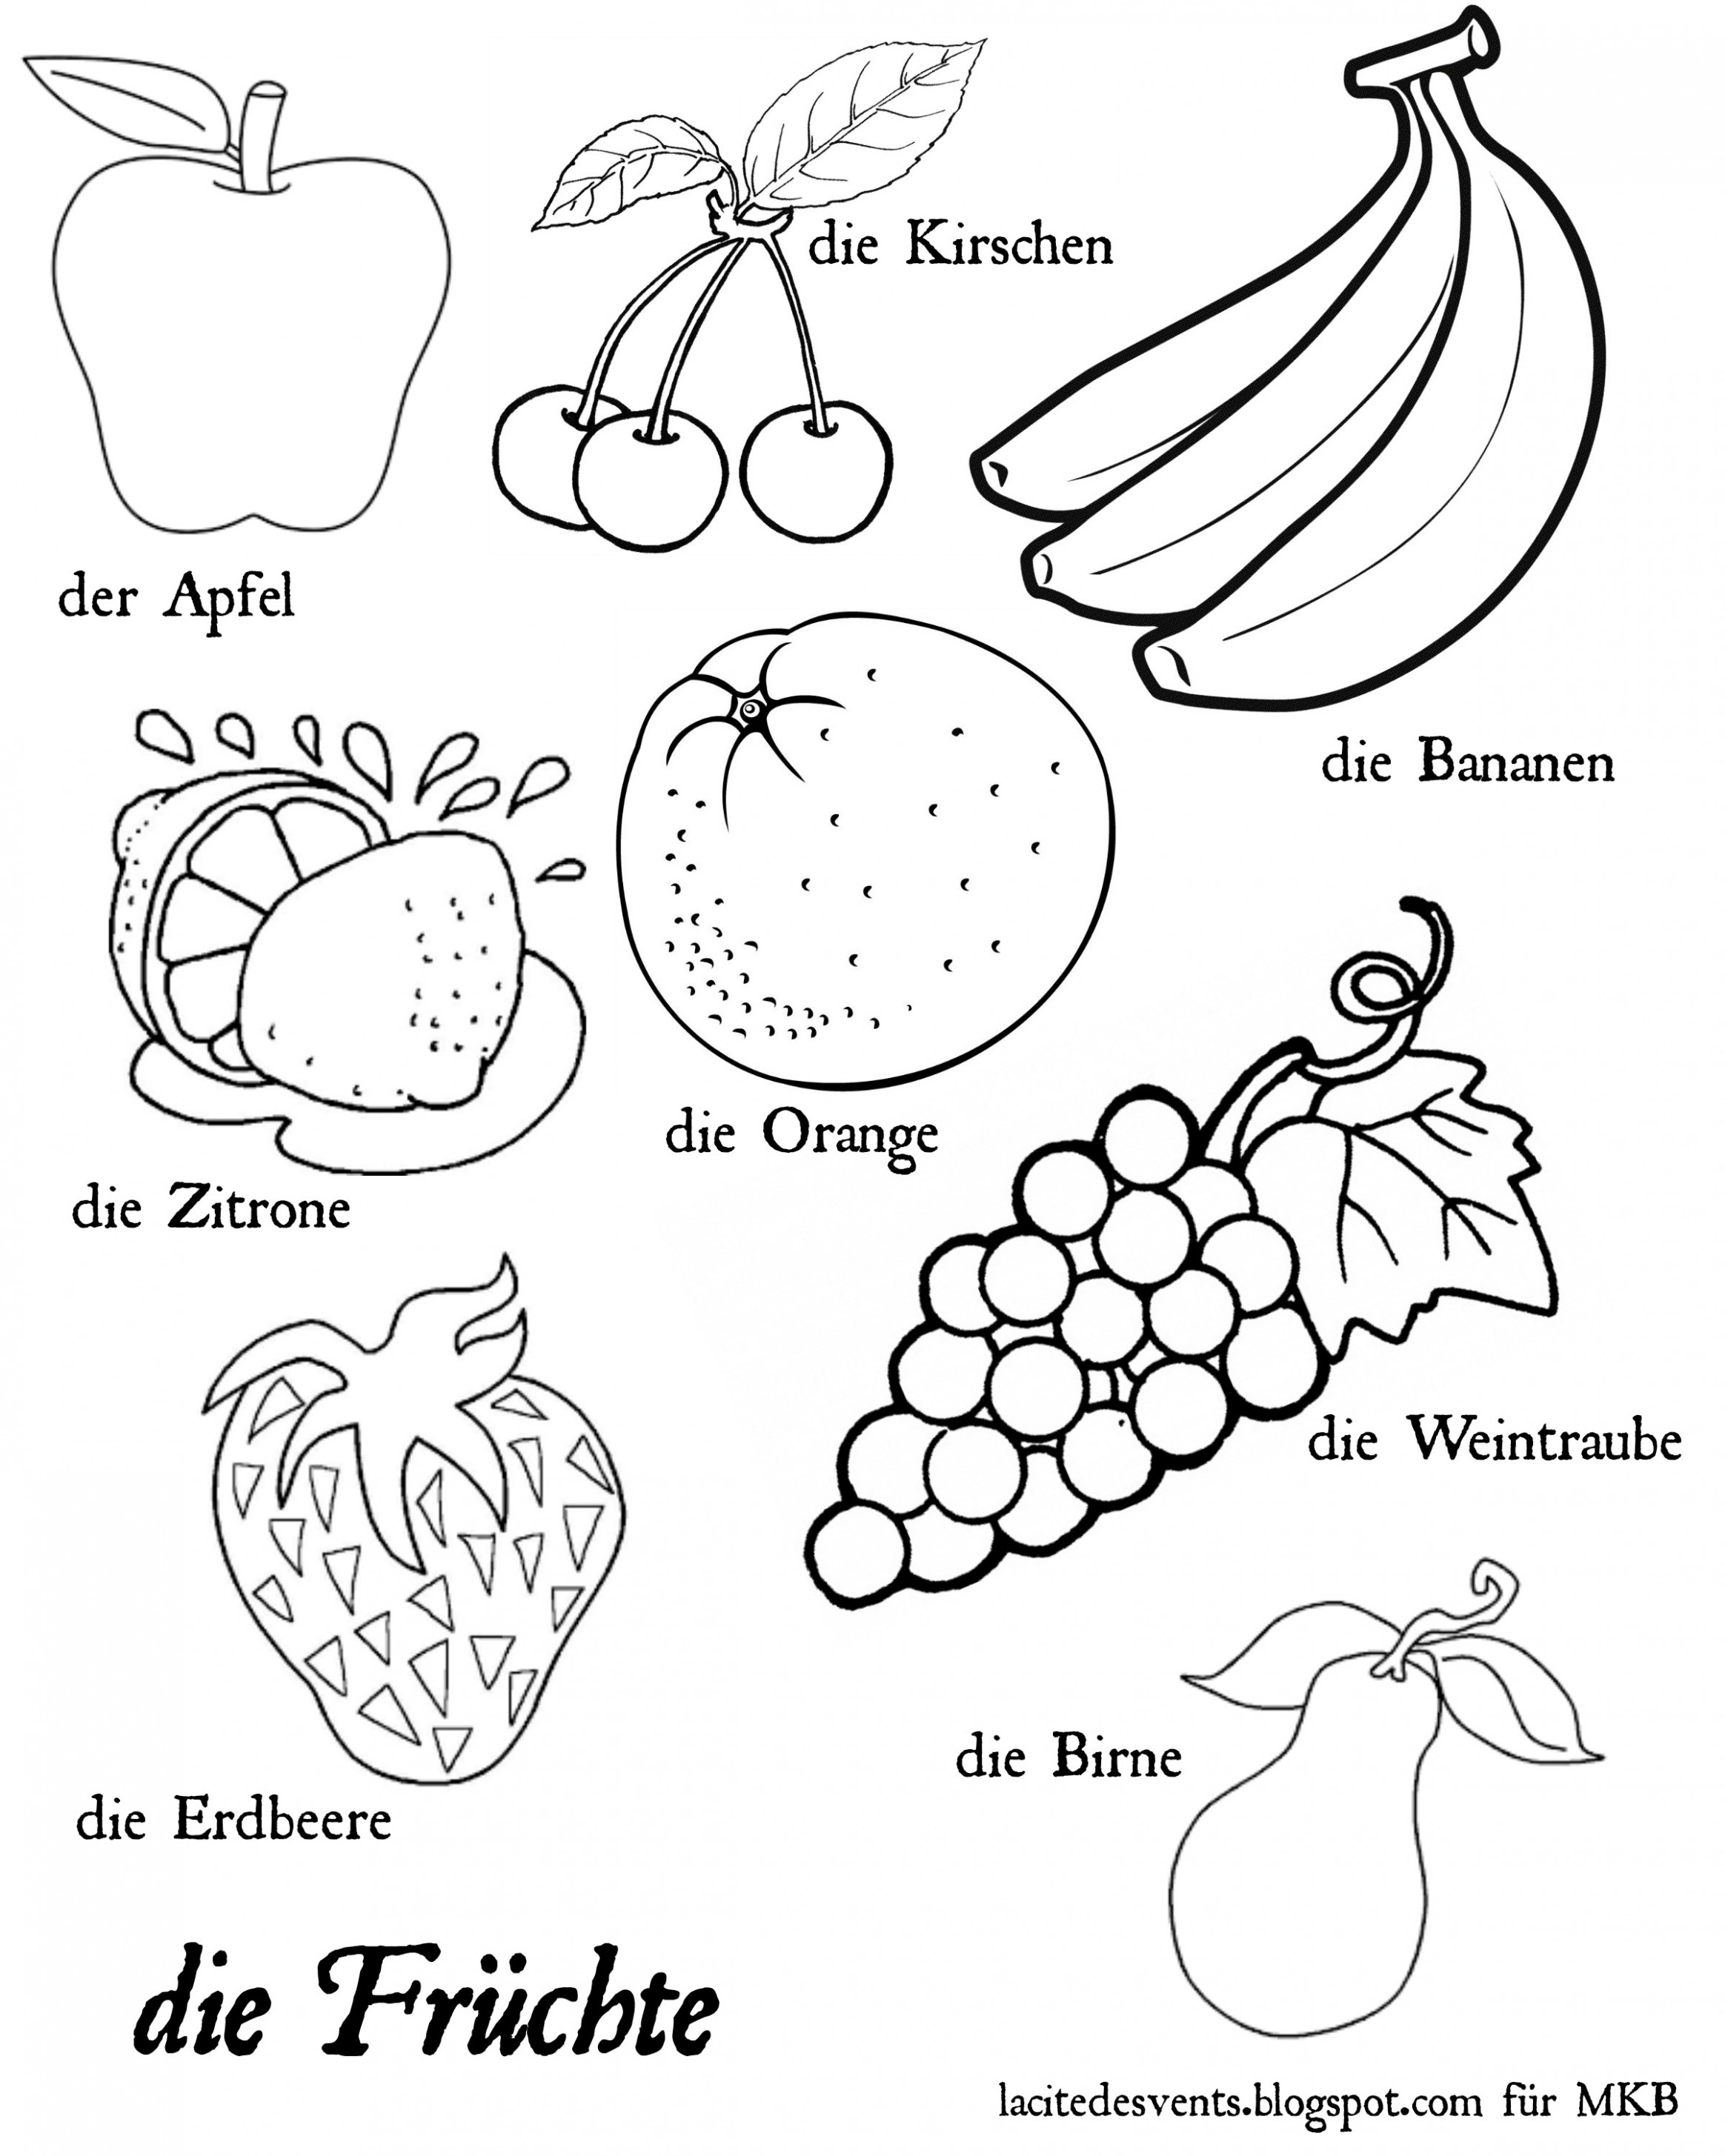 how to draw fruit drawing banana how to fruit draw